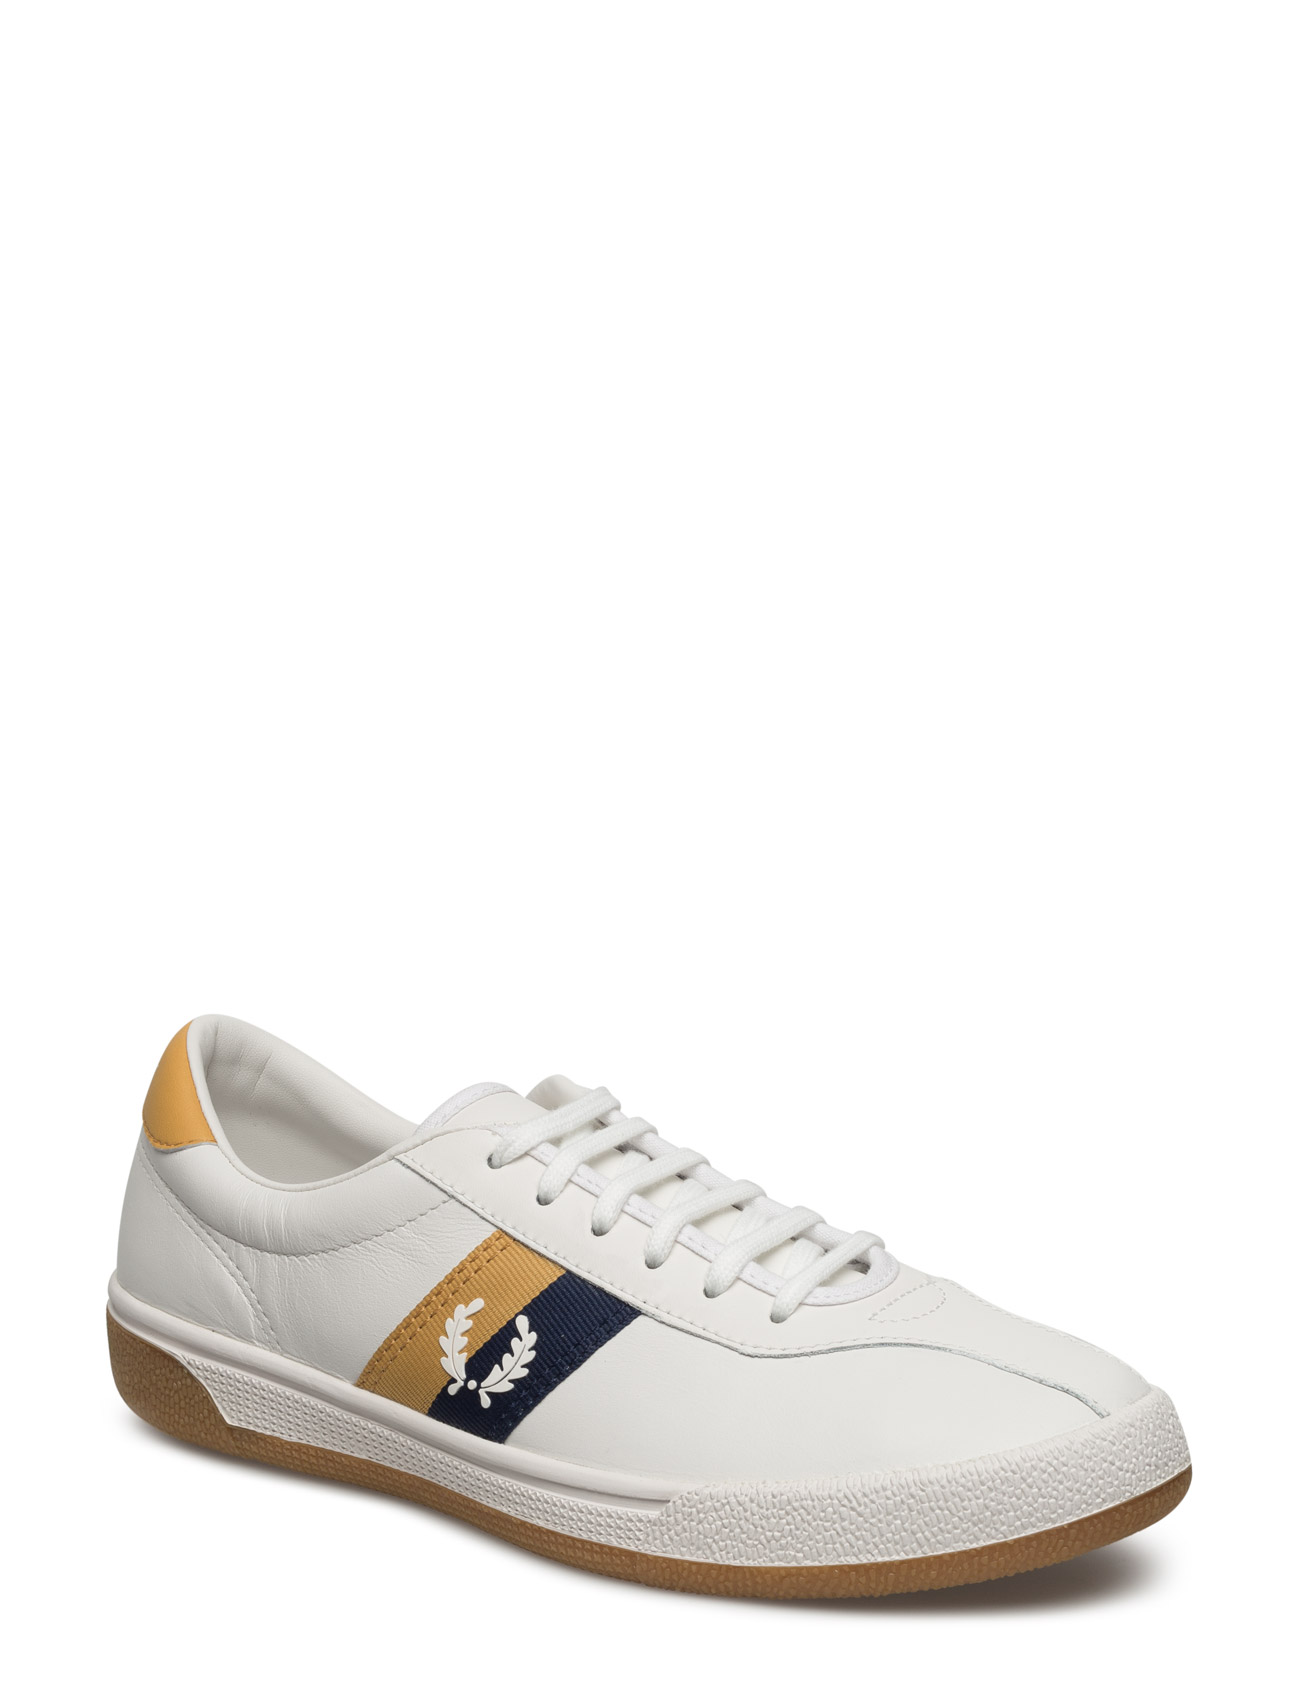 Fp Sprts Auth Tns Shoe Fred Perry Sneakers til Herrer i